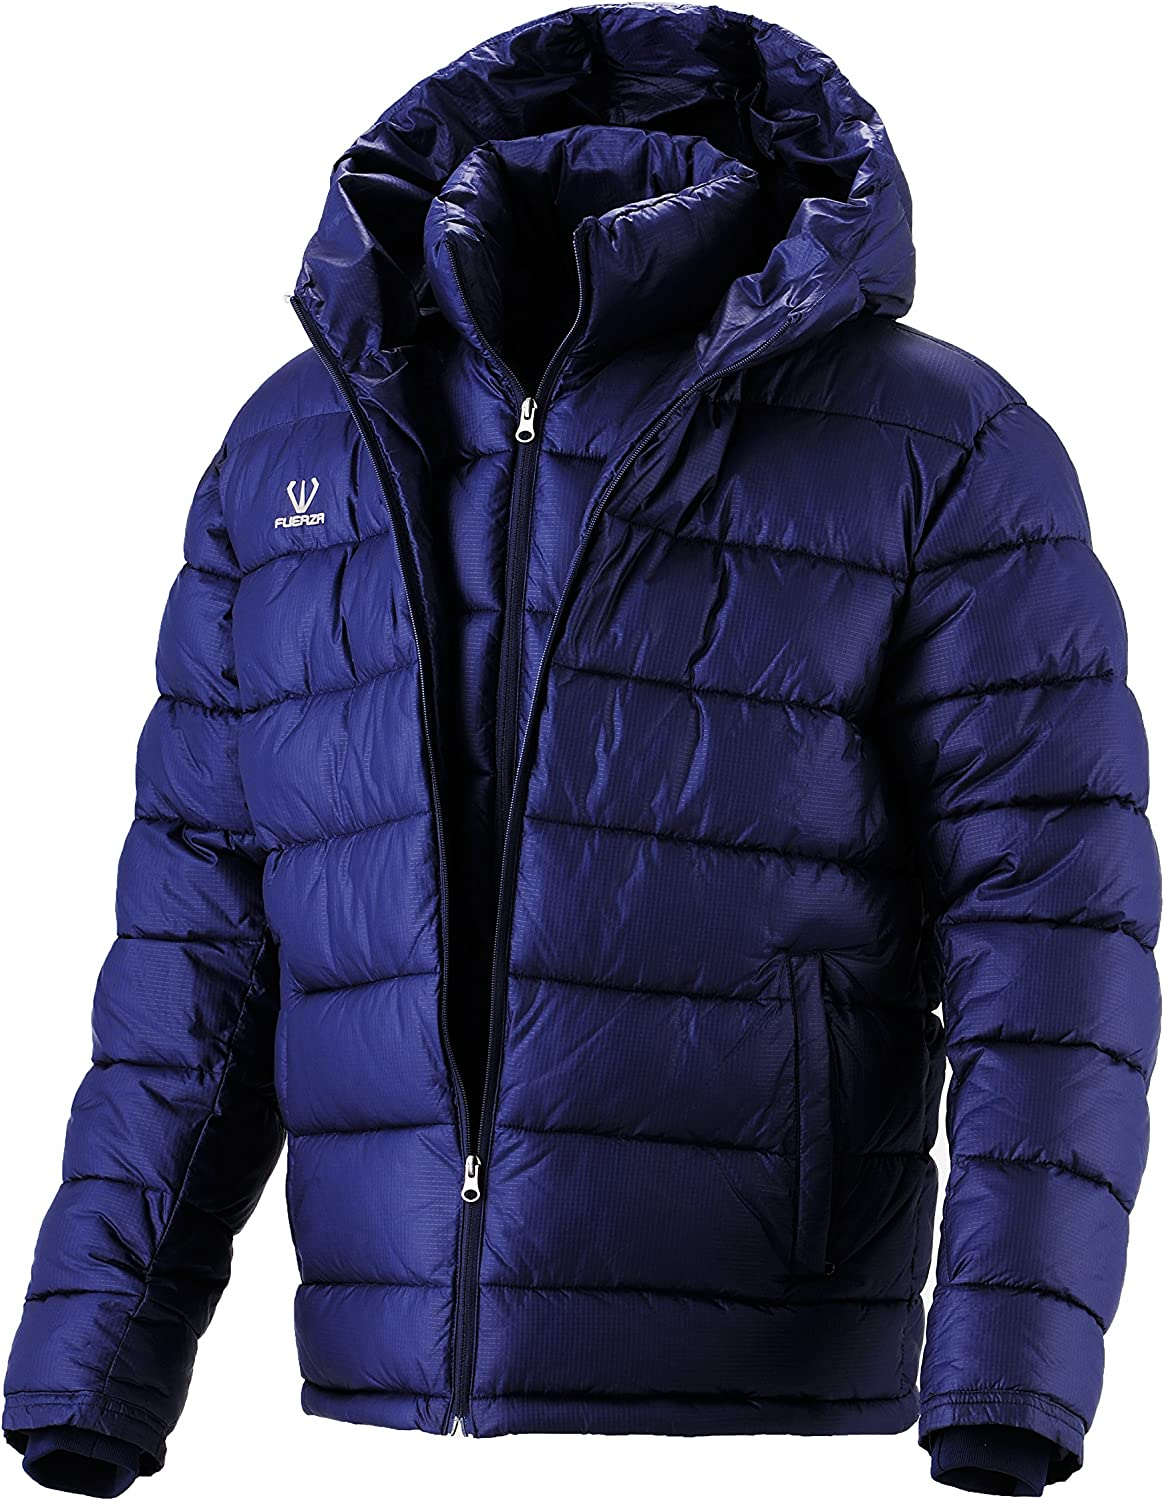 Fuerza Philadelphia Mall Mens Winter Down Wellon Max 74% OFF Hooded Layer Pa Collection Double